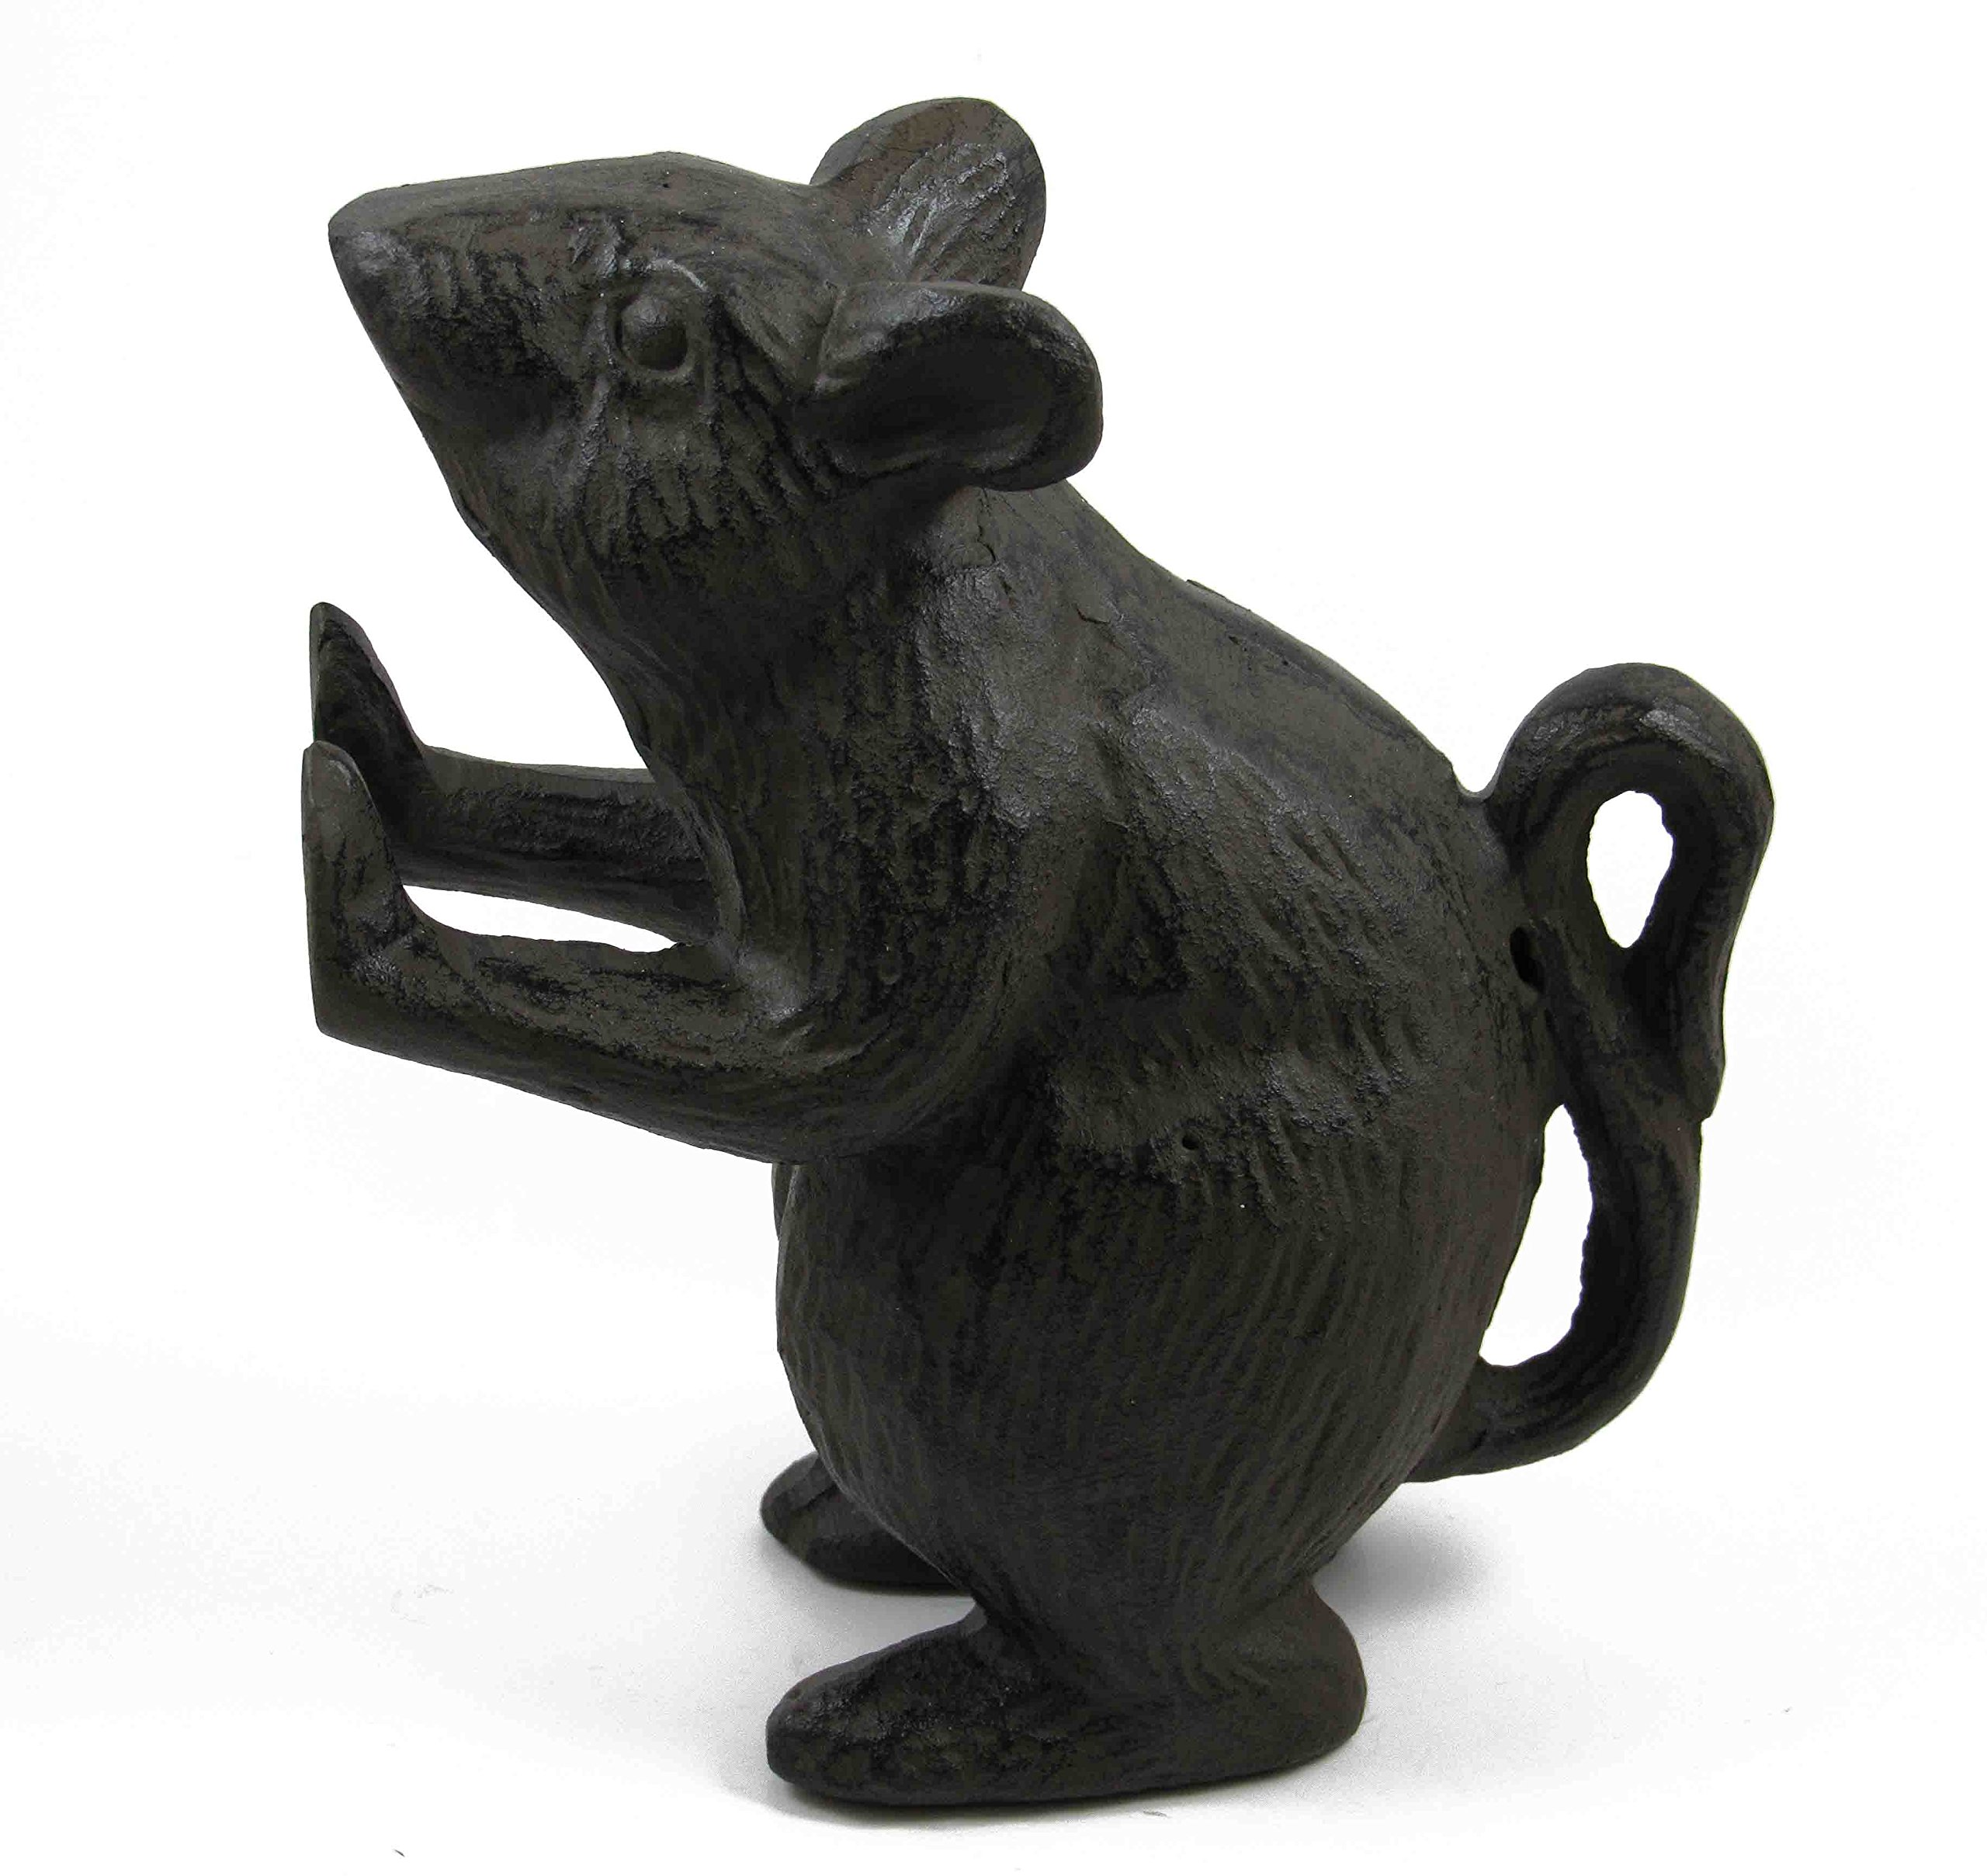 Distressed Cast Iron Mouse Rodent Door Stopper Farmhouse, Shabby Chic, Rustic Quality Decorative, Vintage Door Stop - Stop Your Interior Or Exterior Doors with Great Style by Ashes to Beauty (Brown)